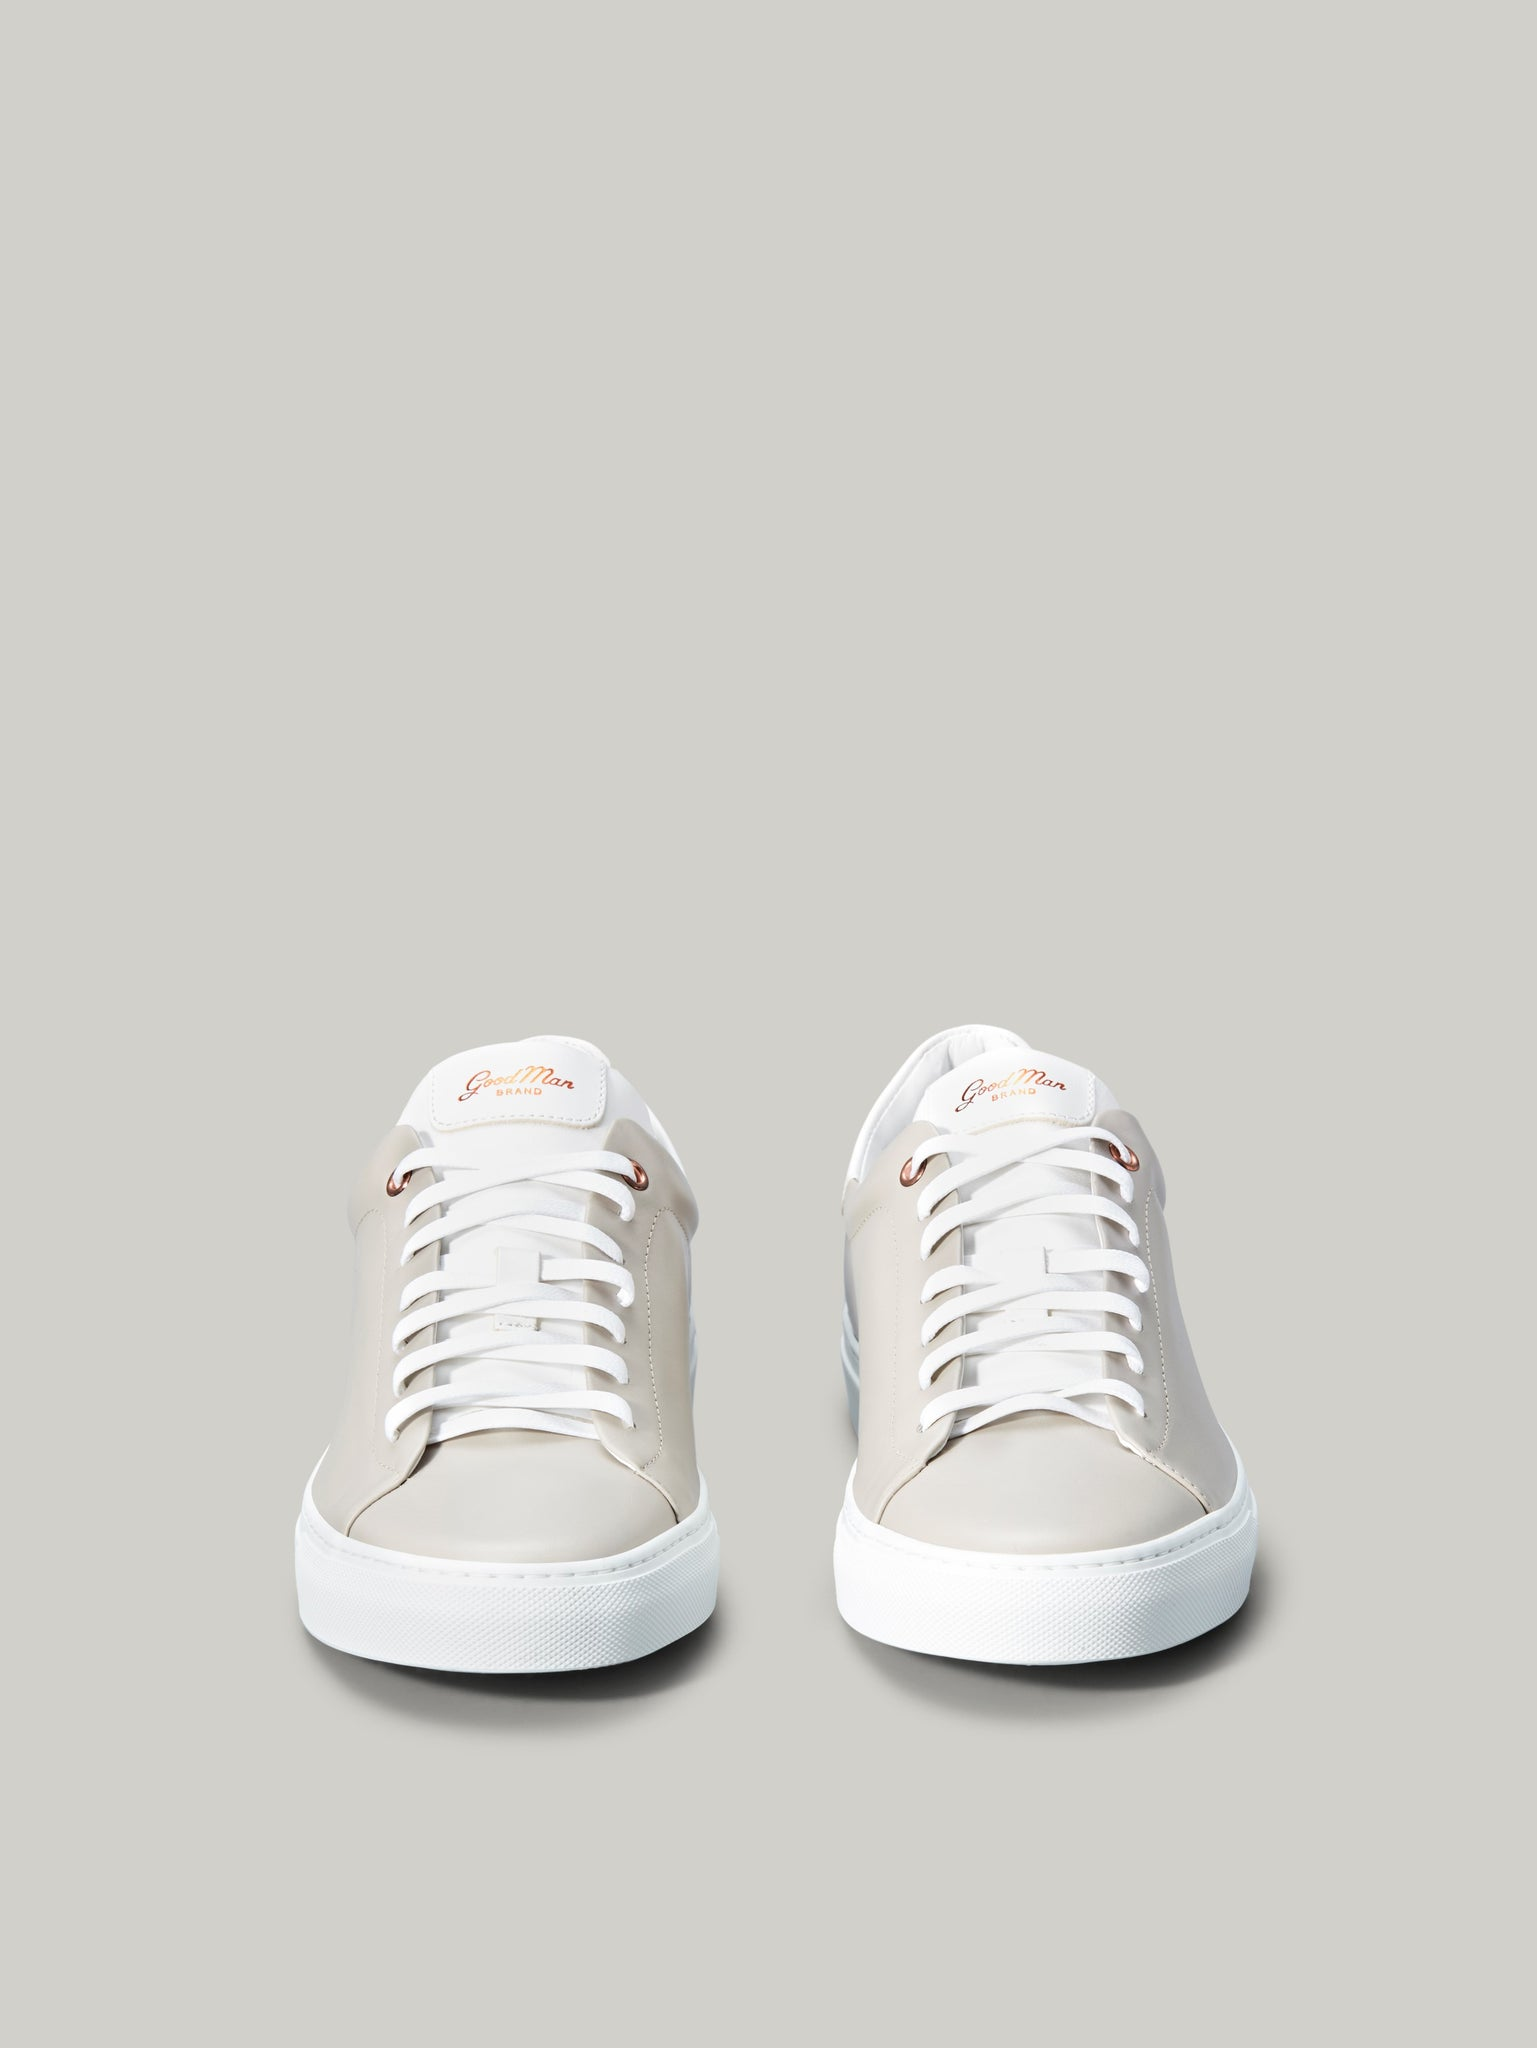 Legend Lo Top Sneaker - Silver / White